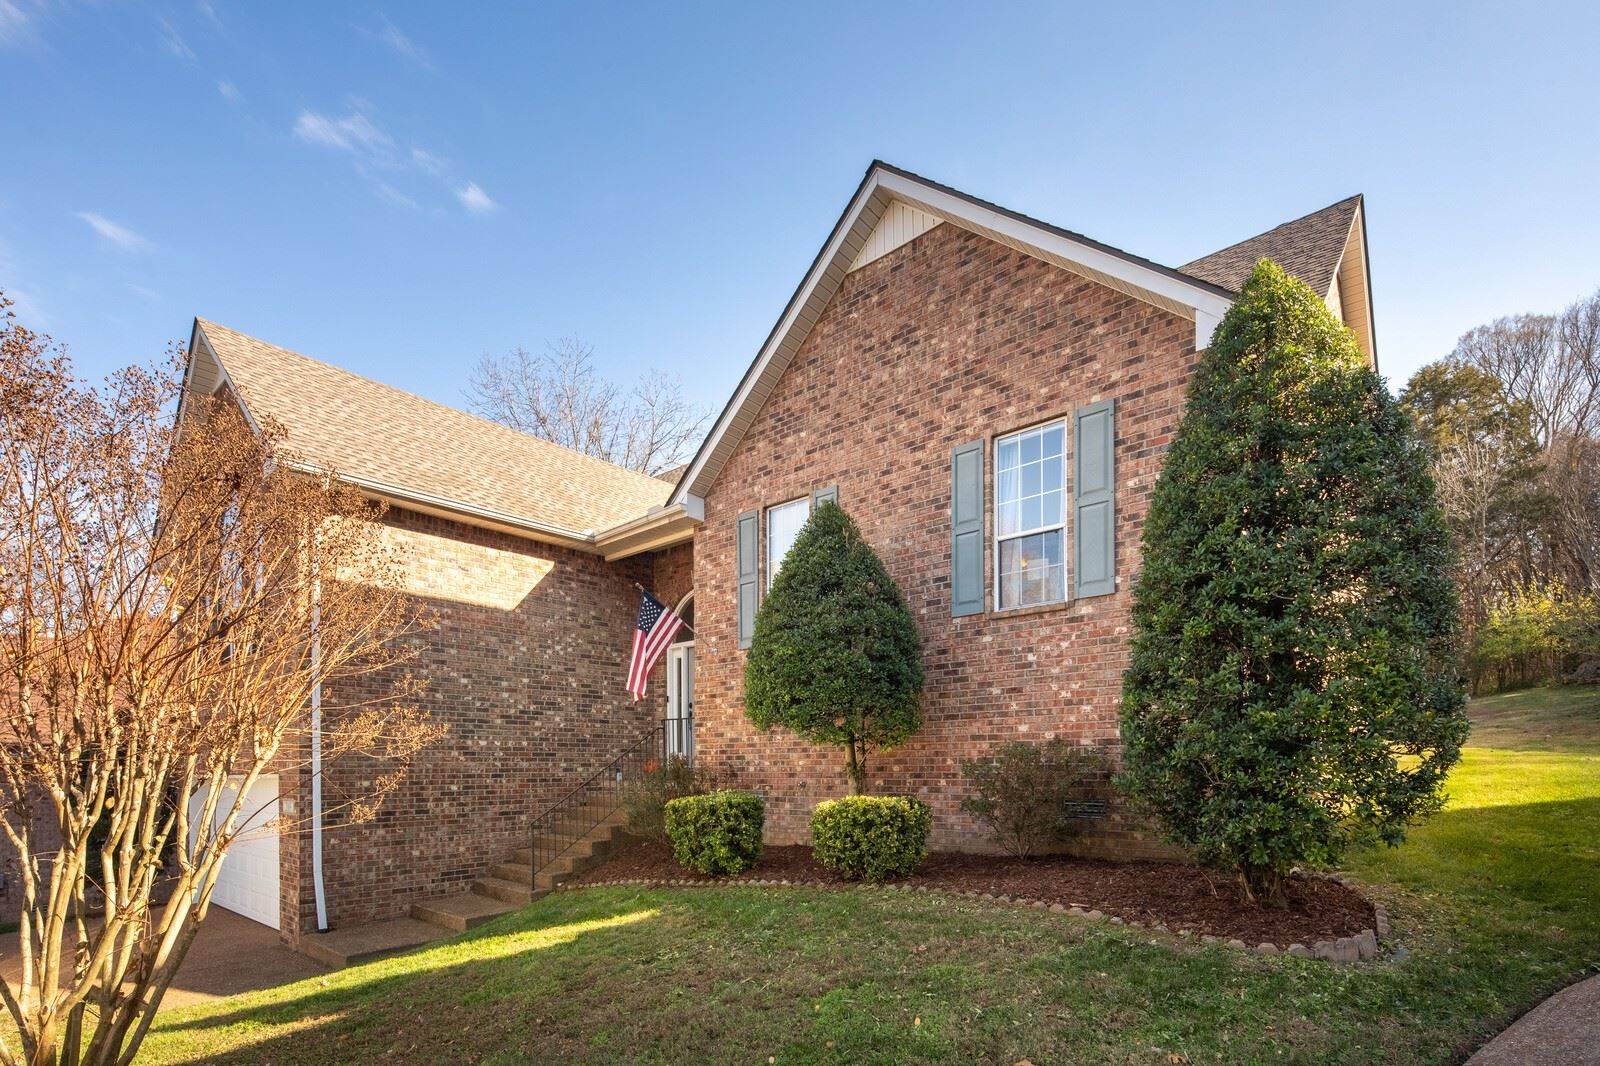 209 Sugarberry Ct, Nashville, TN 37211 - MLS#: 2208187